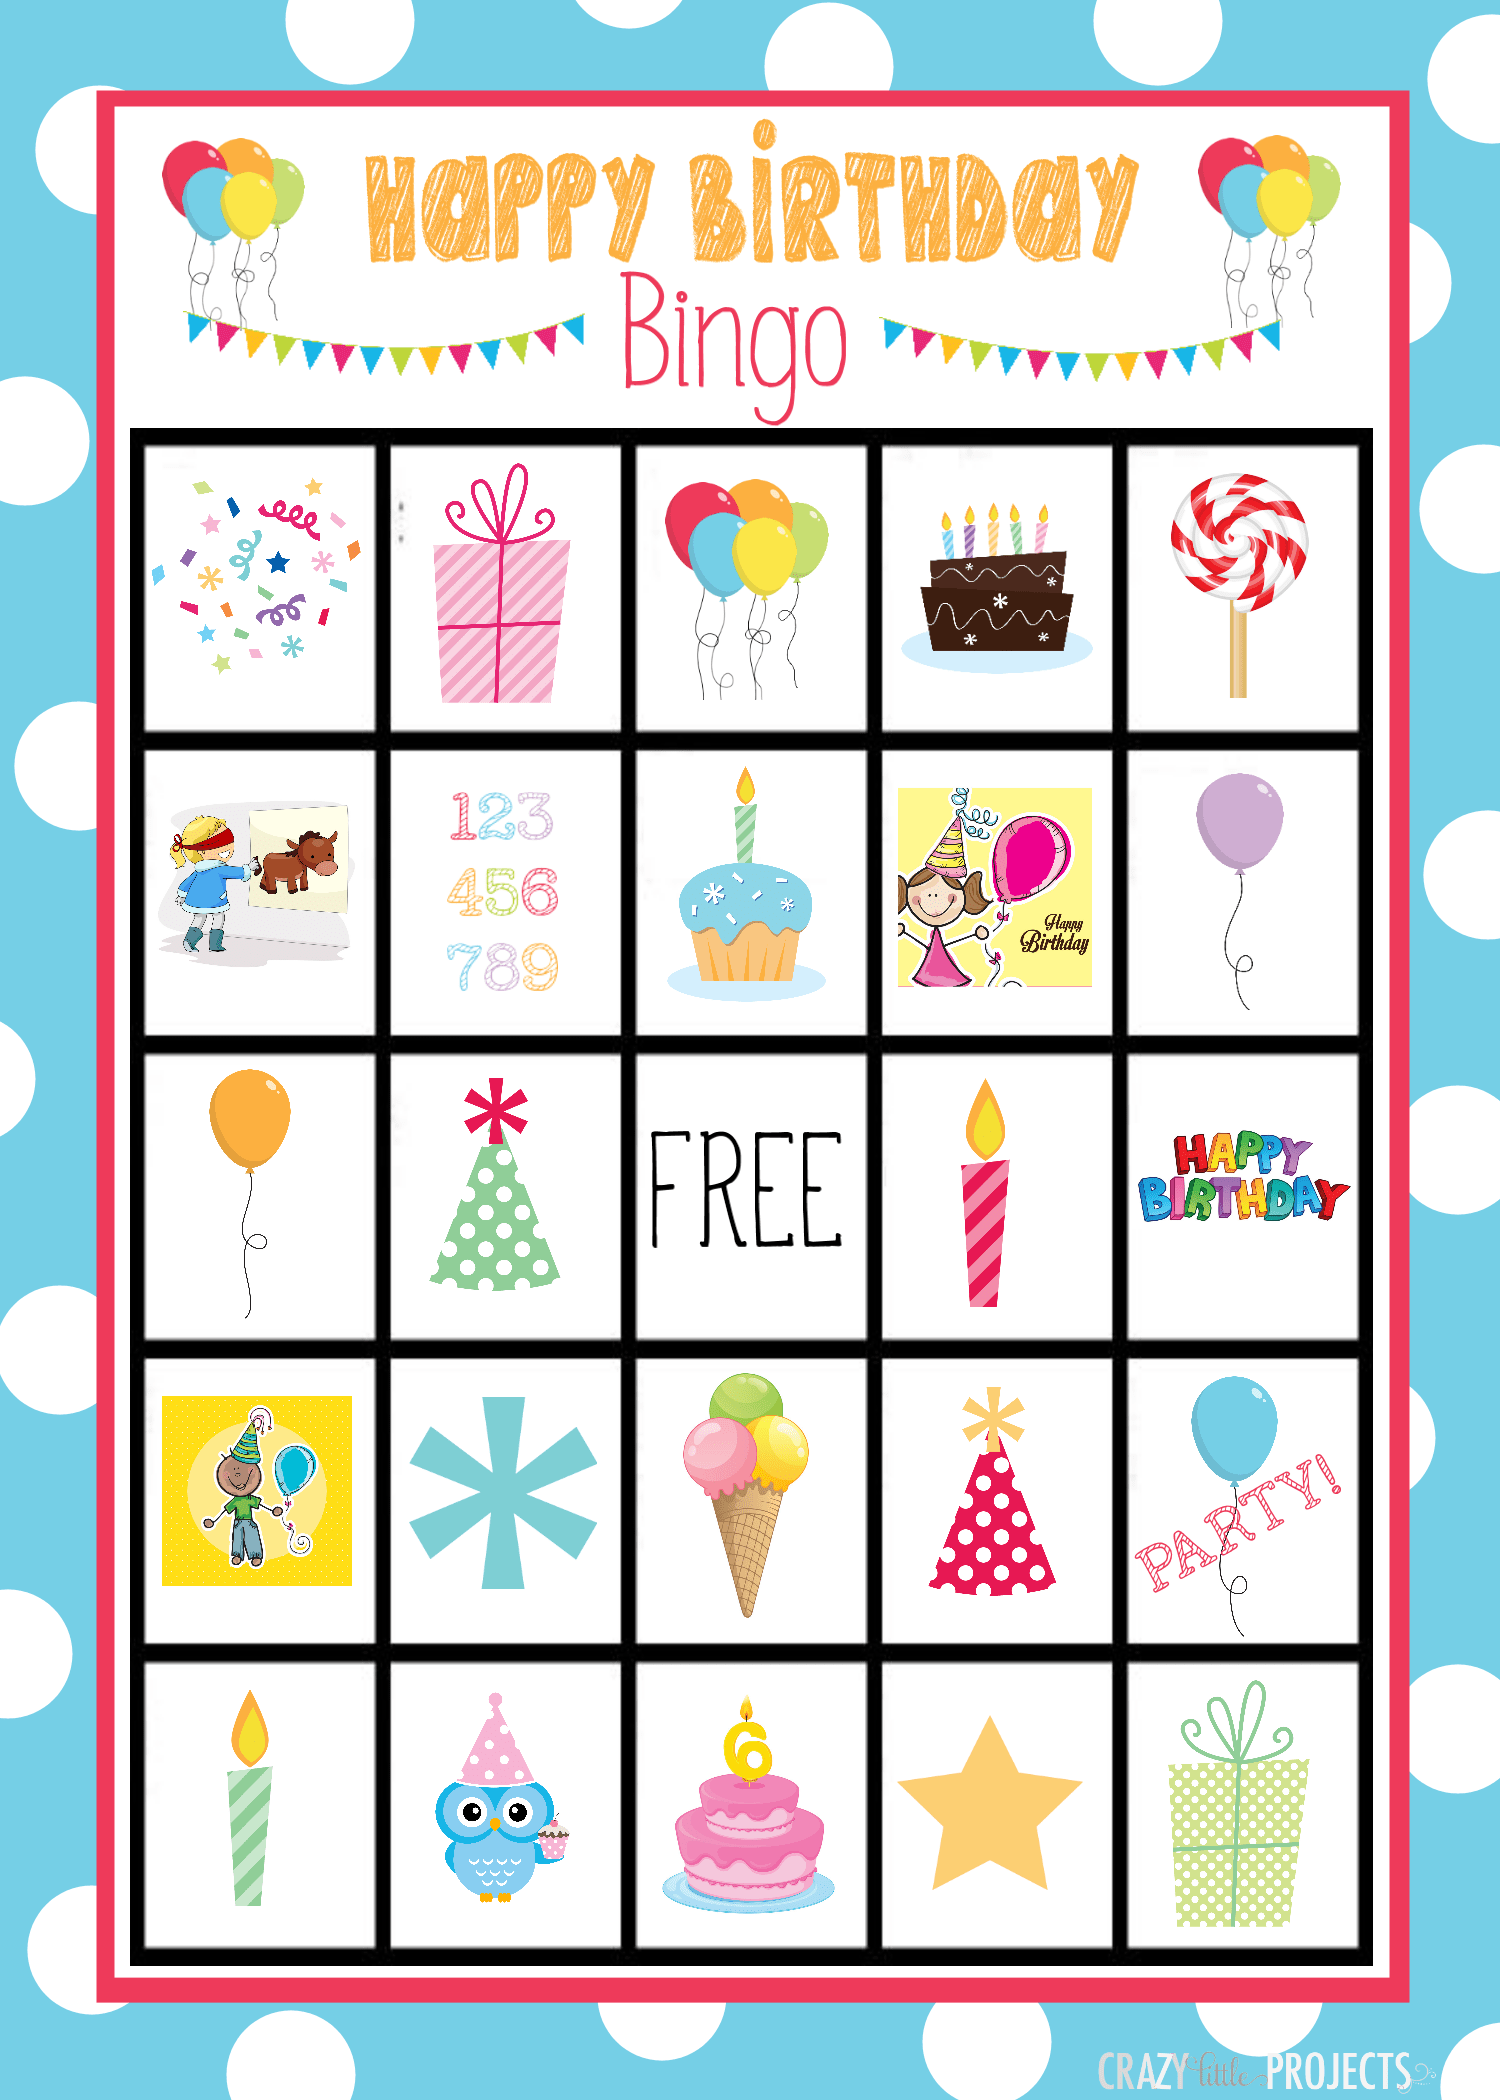 Birthday Bingo Cards Crazy Little Projects